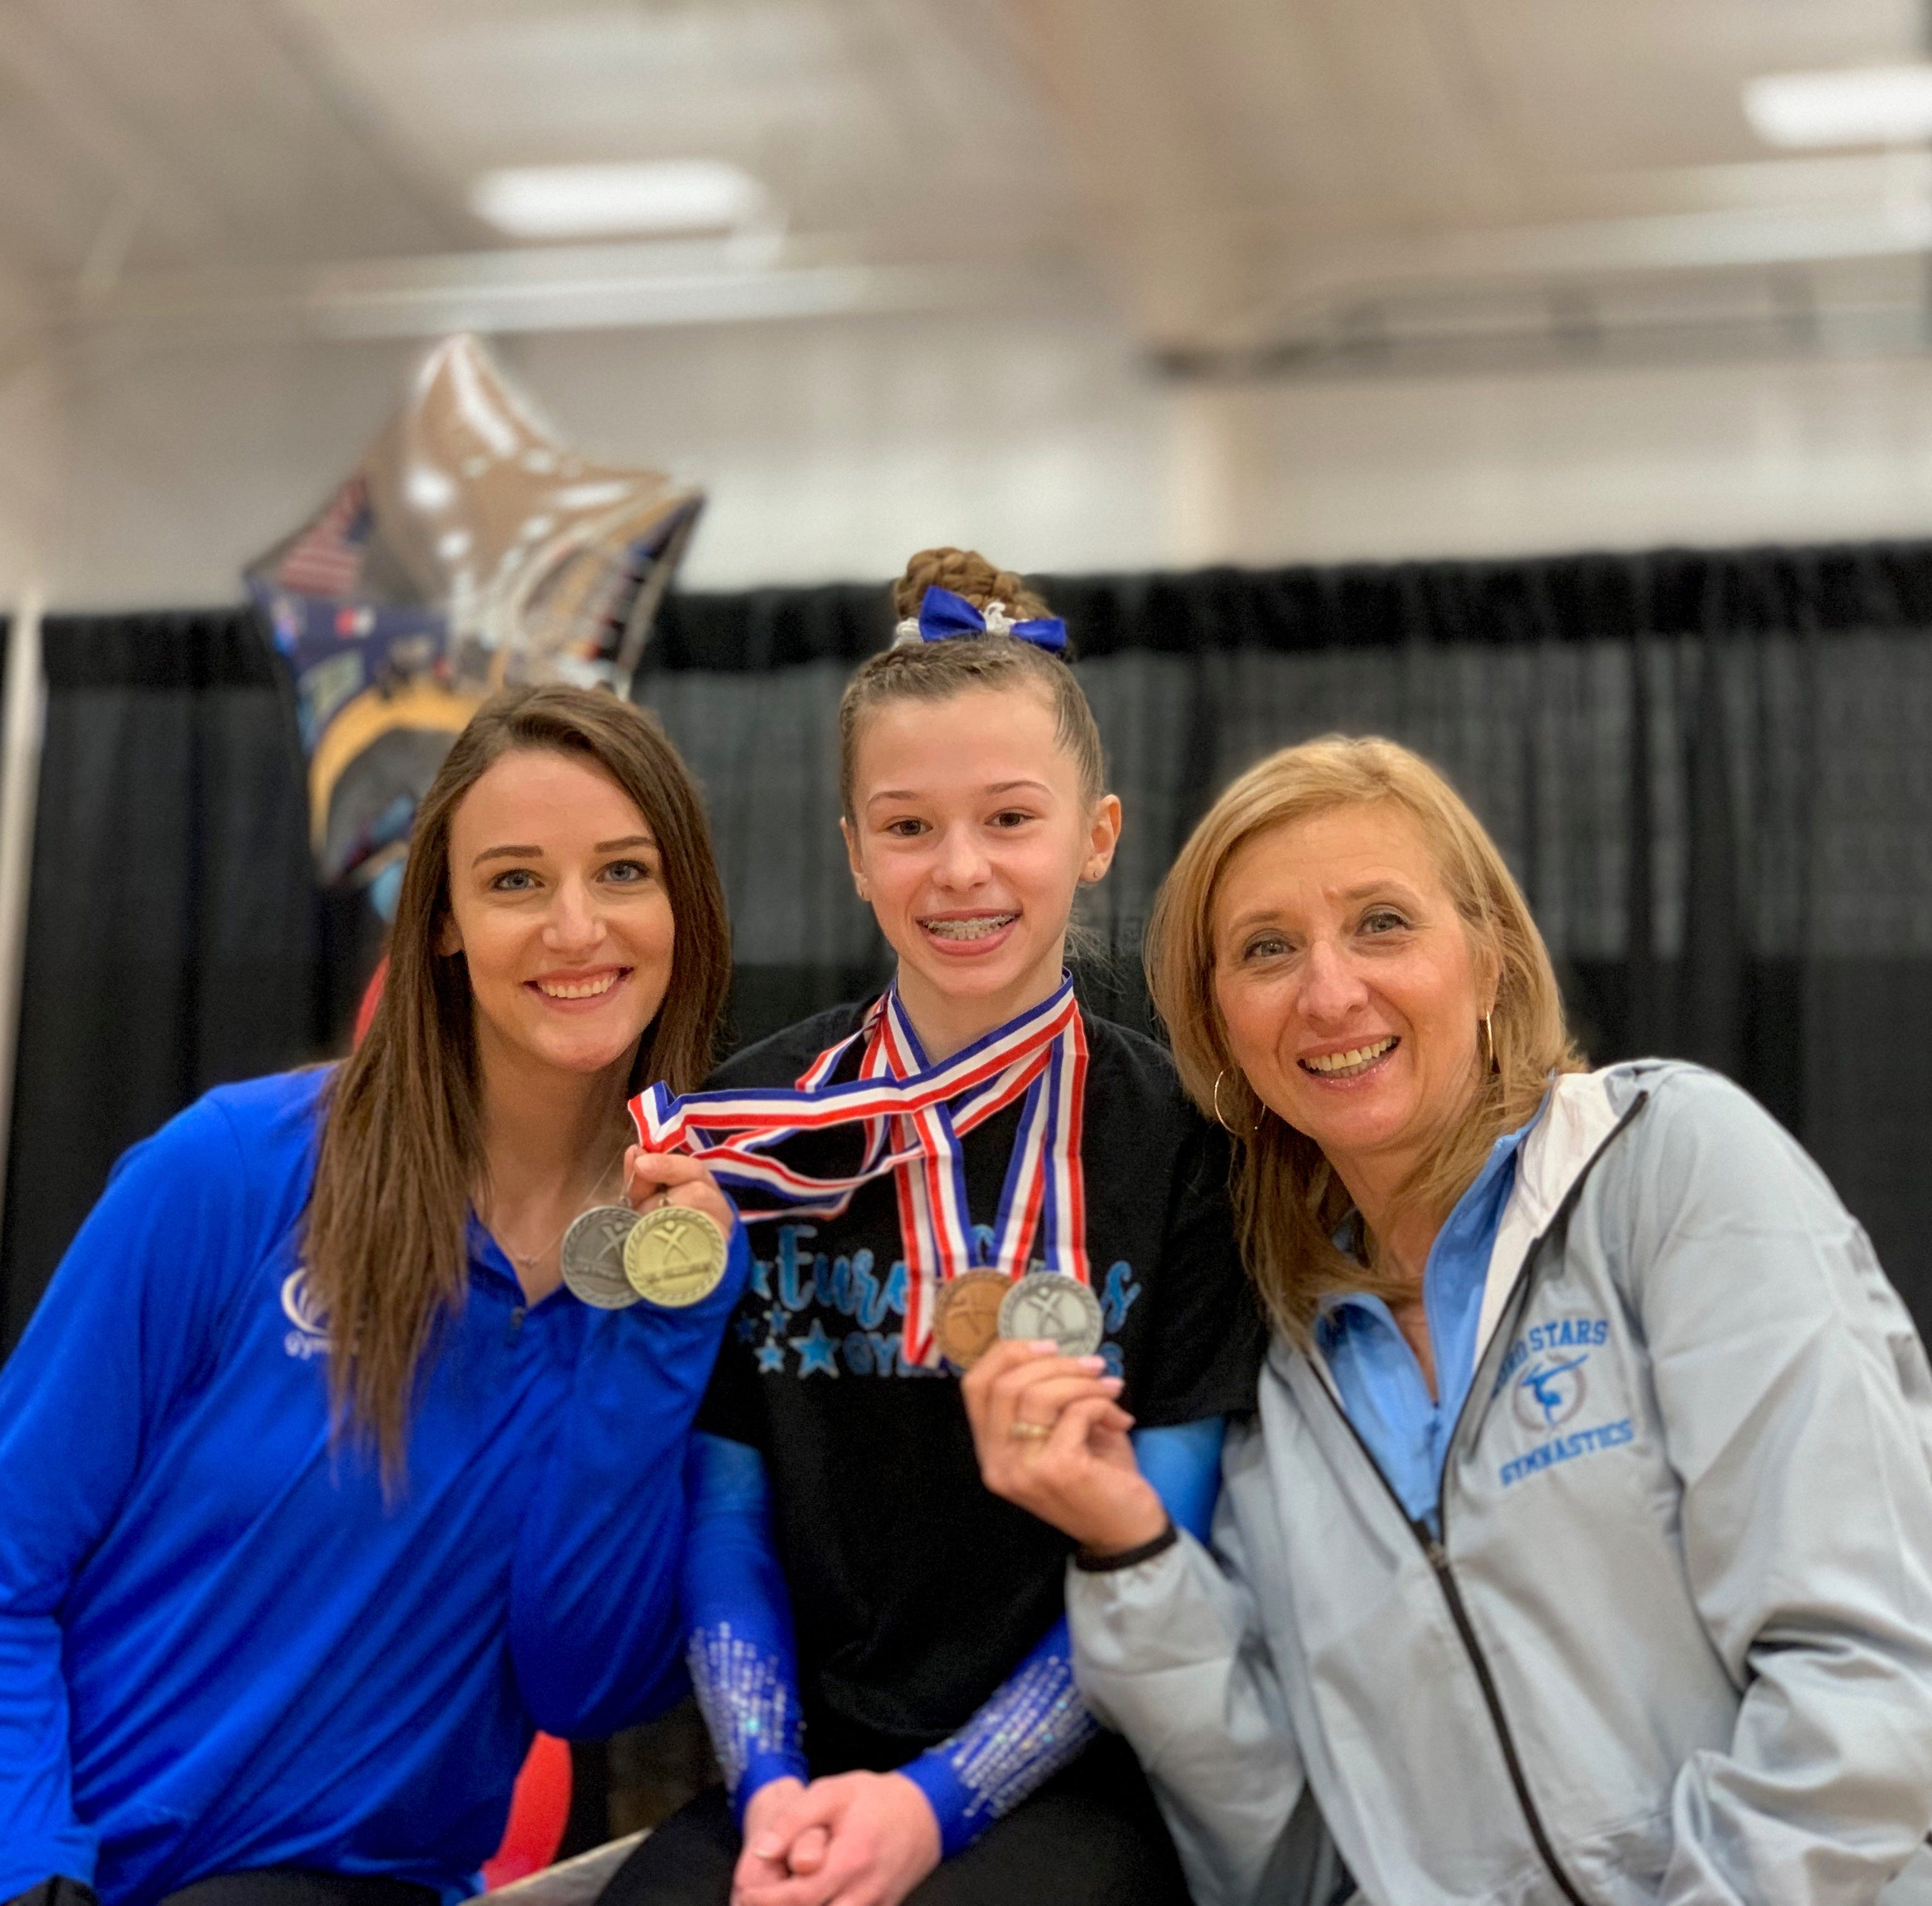 Northville middle school gymnast wins state championship on bars